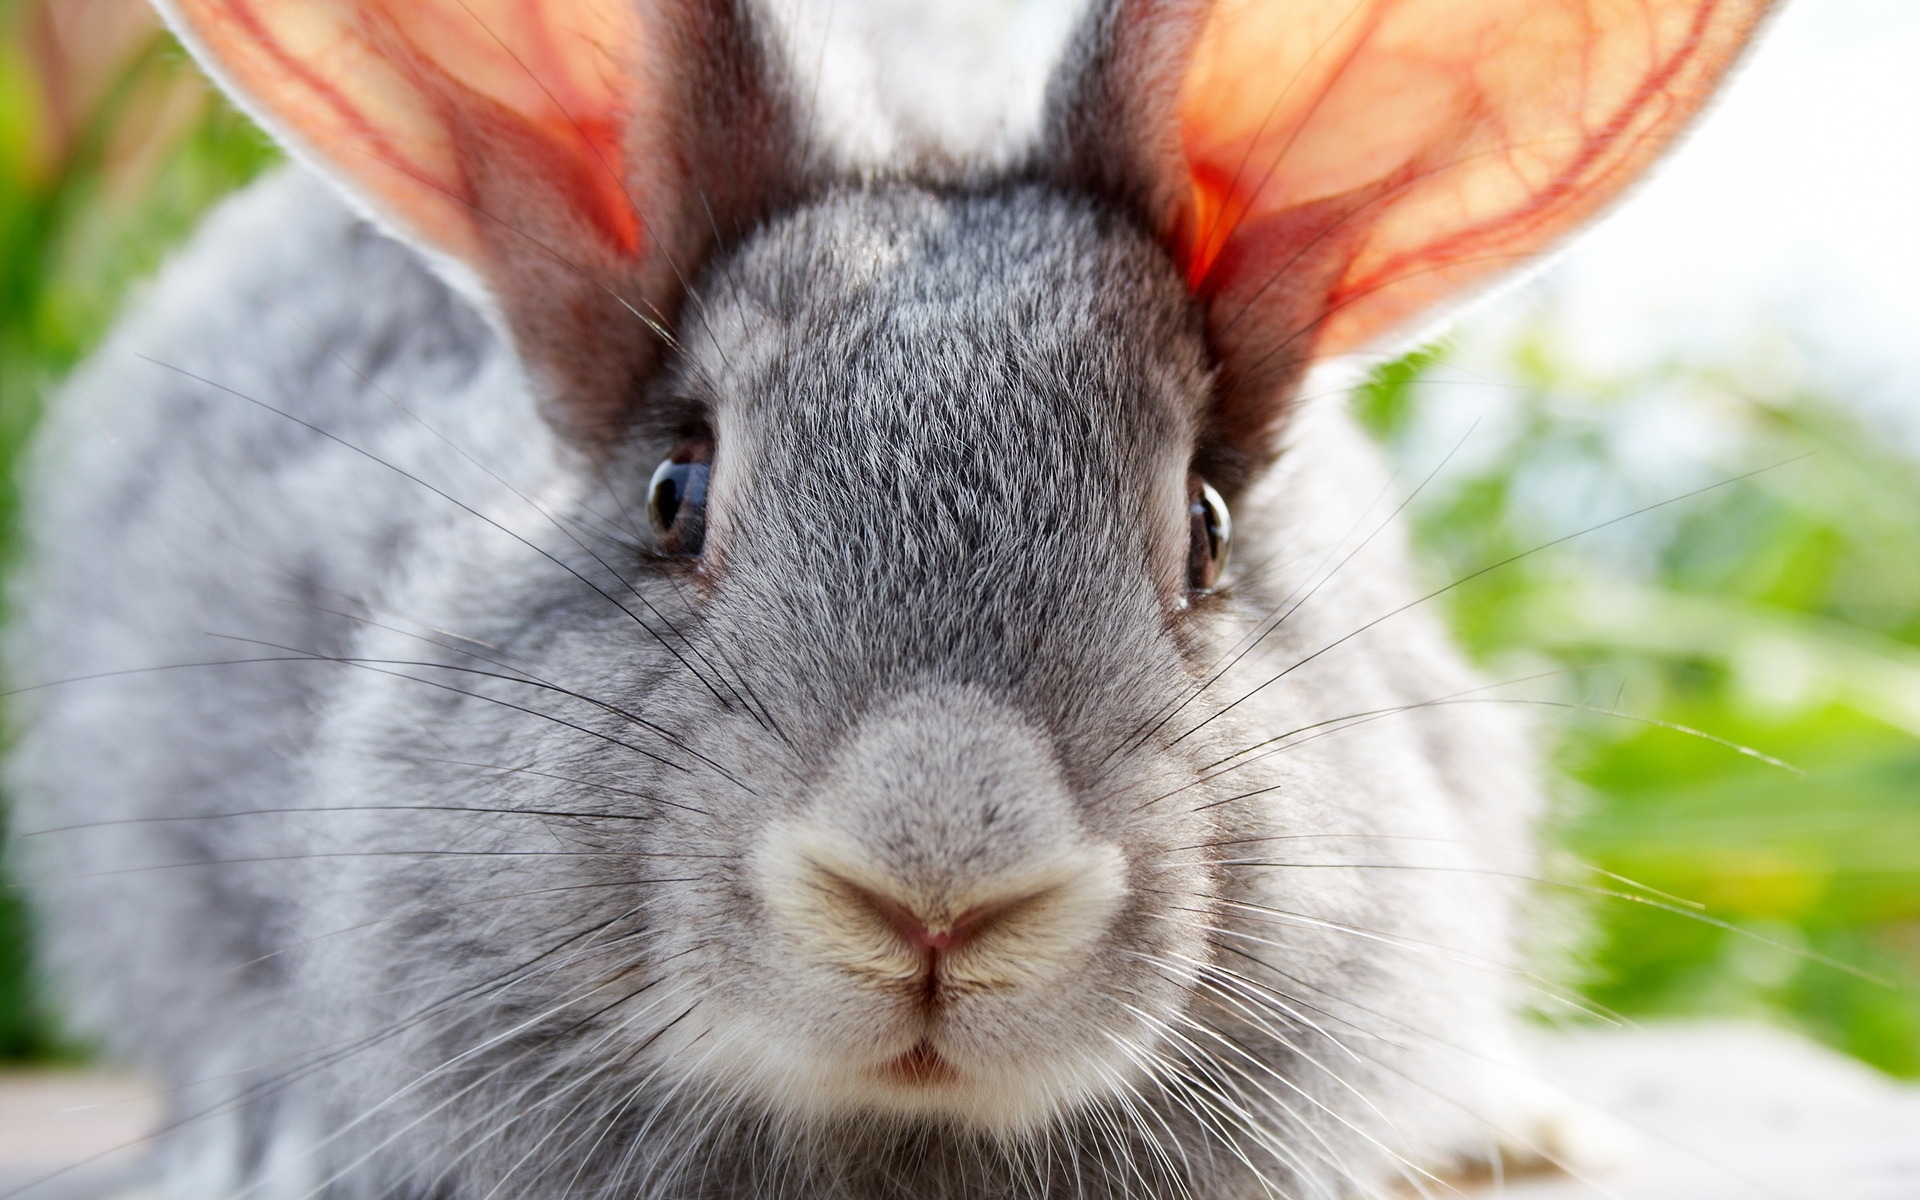 28777 download wallpaper Animals, Rabbits screensavers and pictures for free